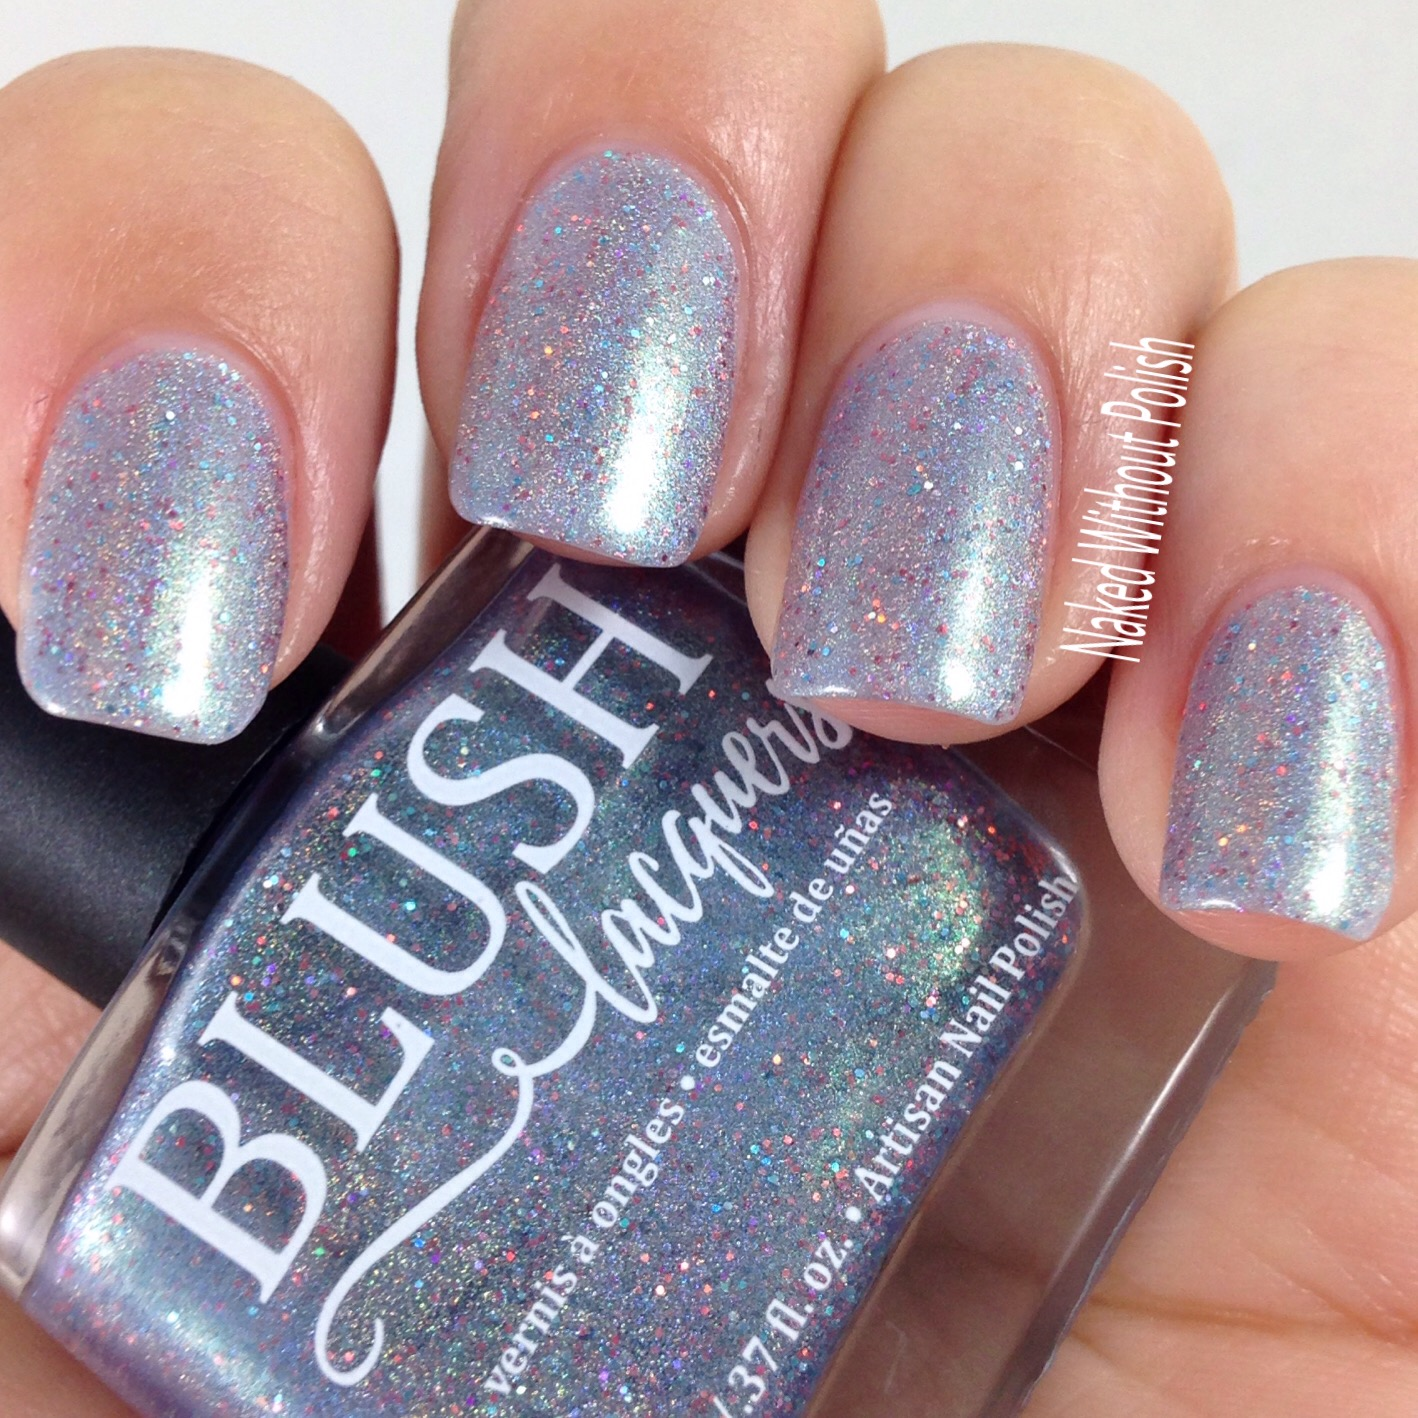 Polish-Pickup-Blush-Lacquers-Hop-on-the-Bandwagon-6